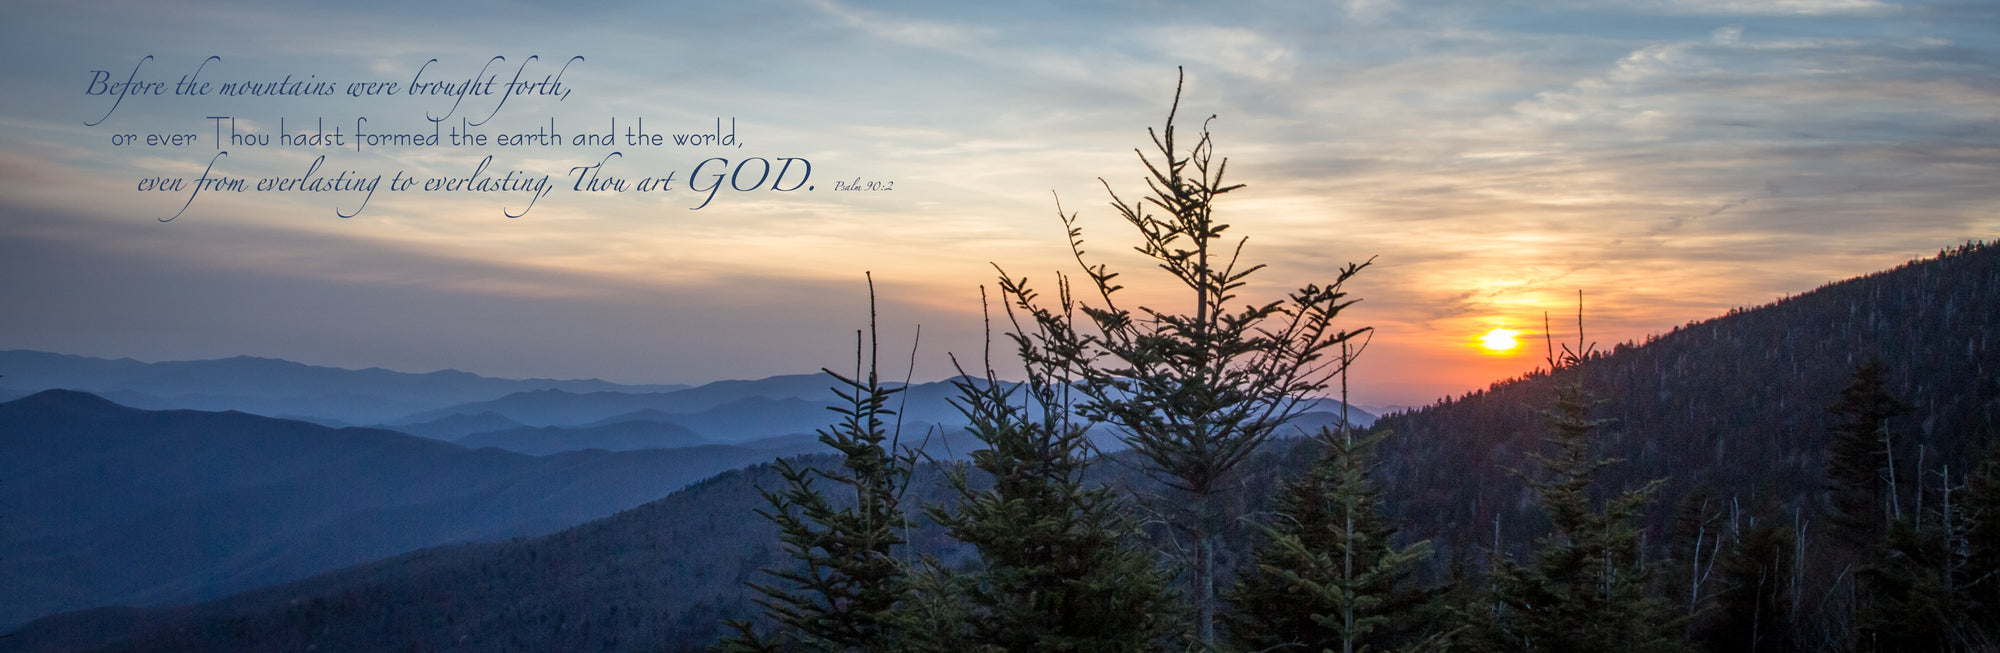 Clingman's Dome Sunset 2 (0046-1)